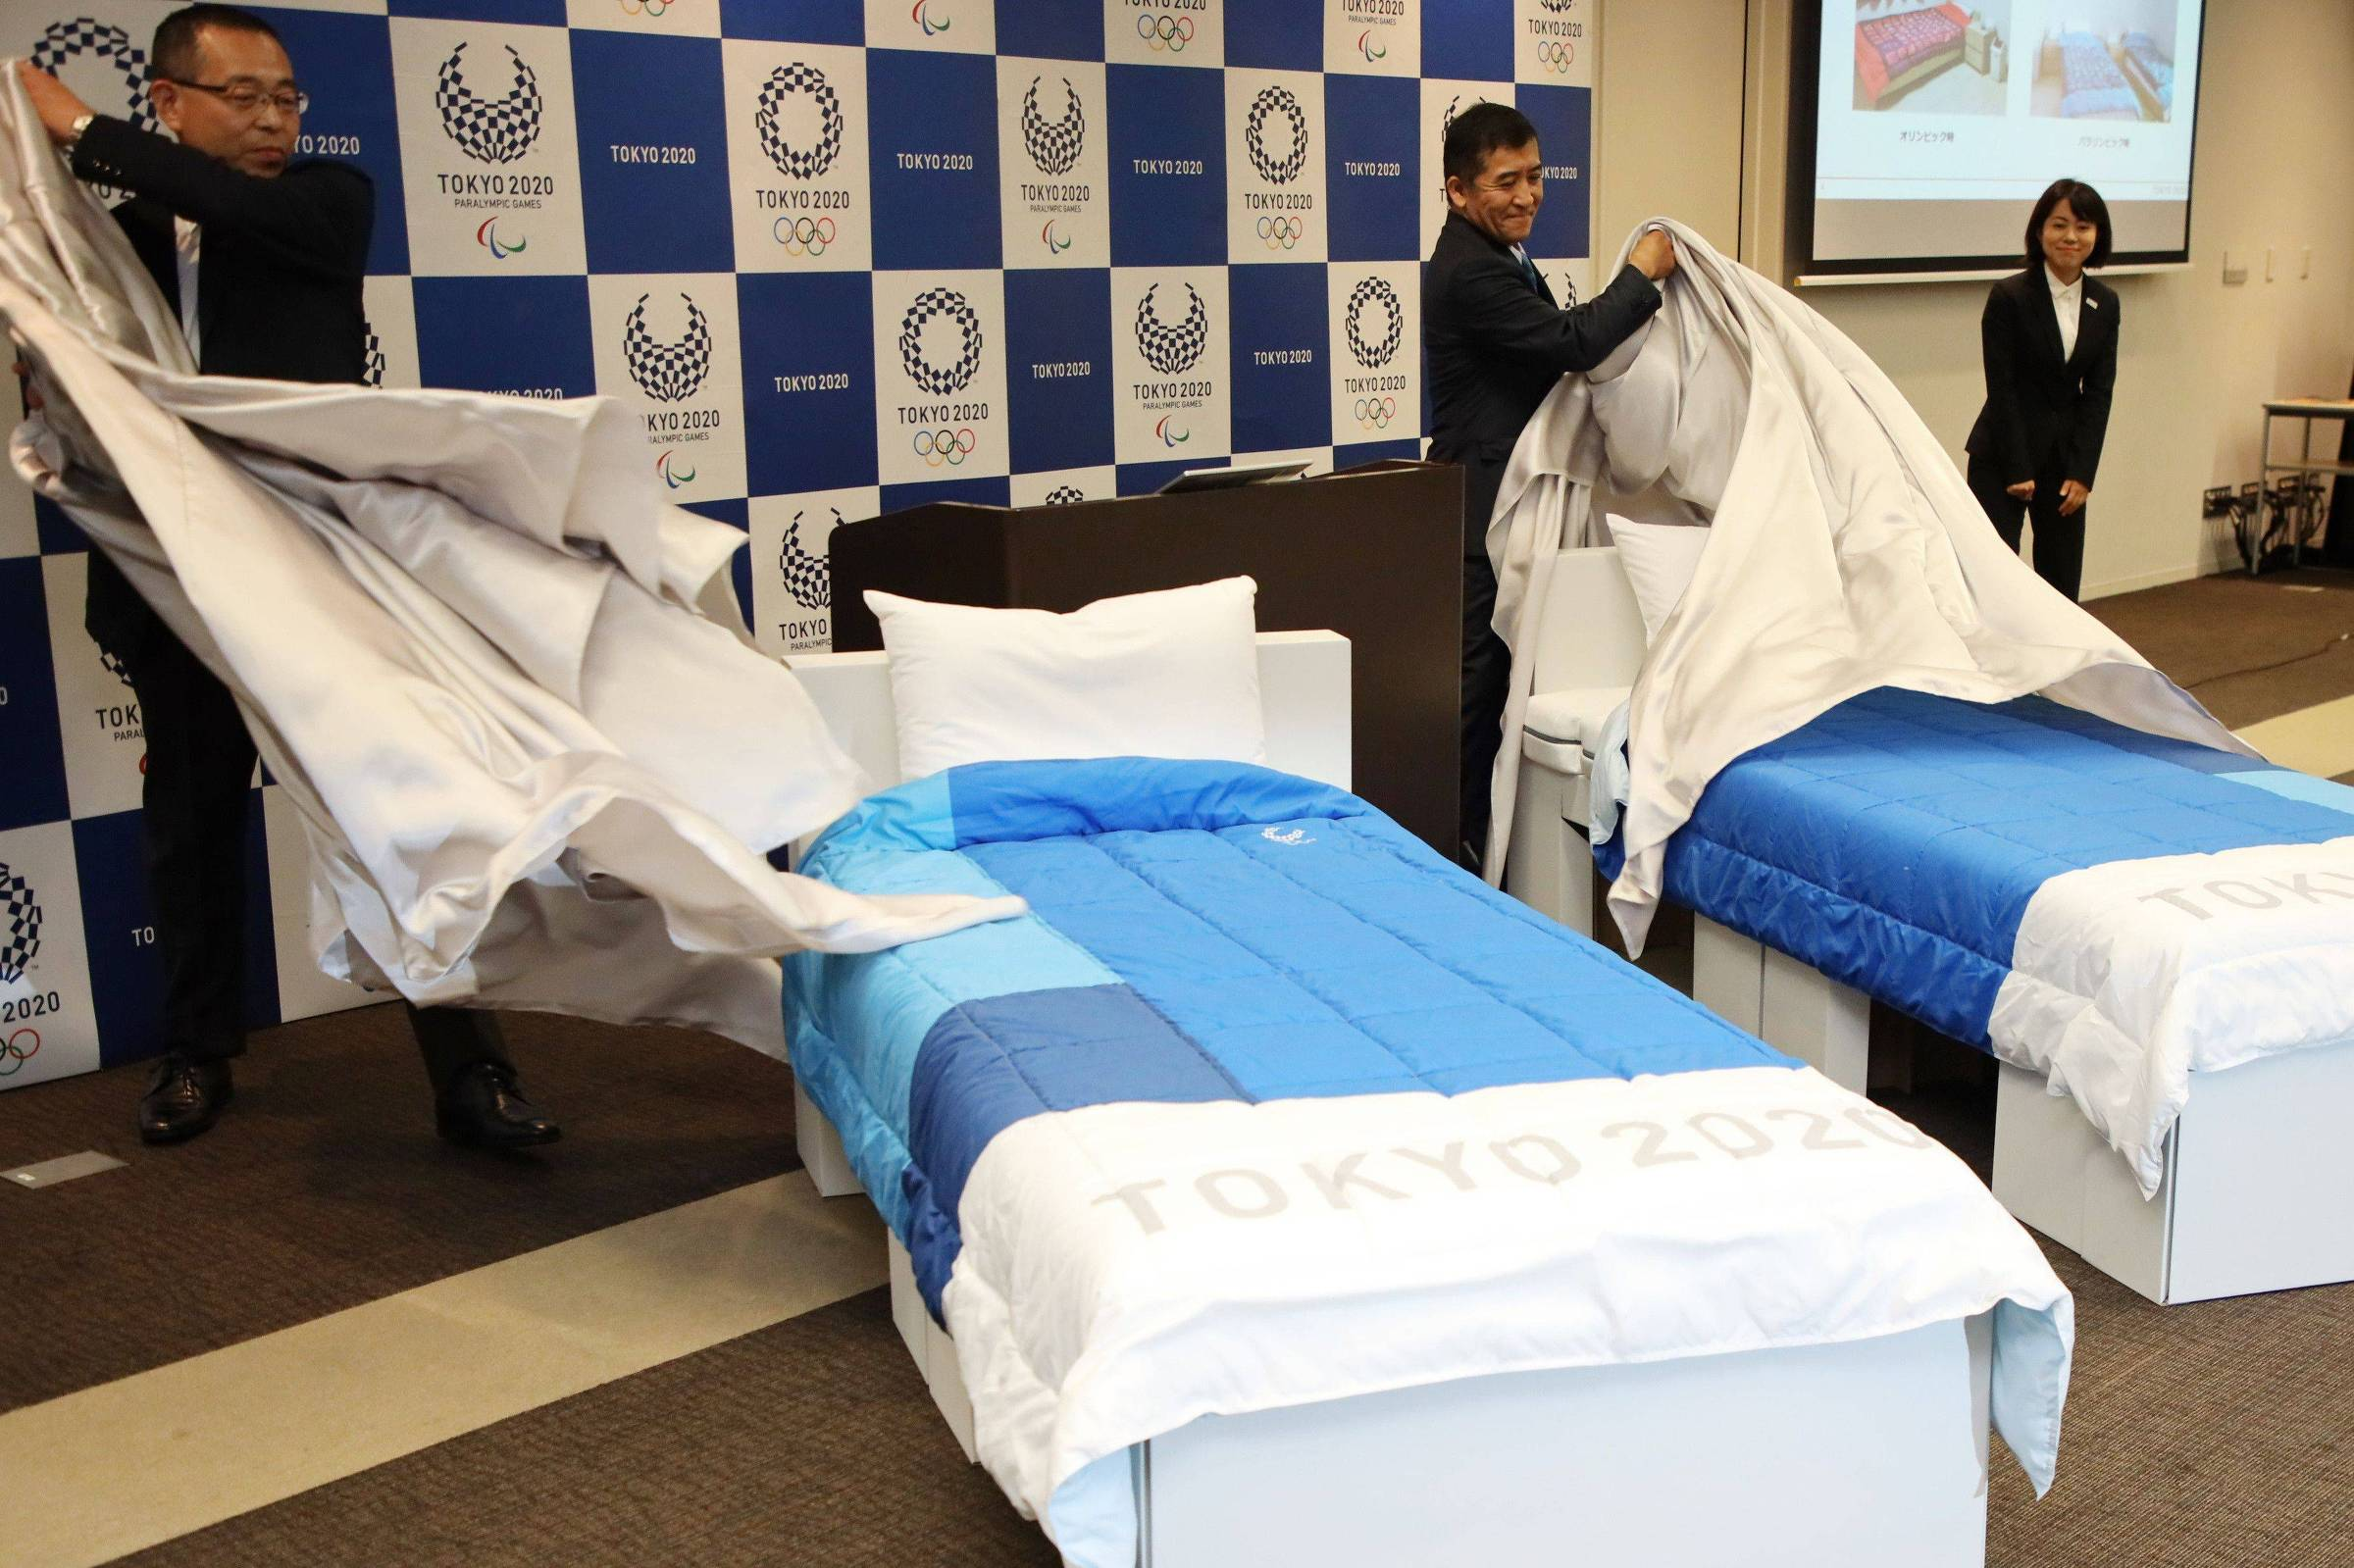 Beds at Tokyo Olympic Village will be made of cardboard